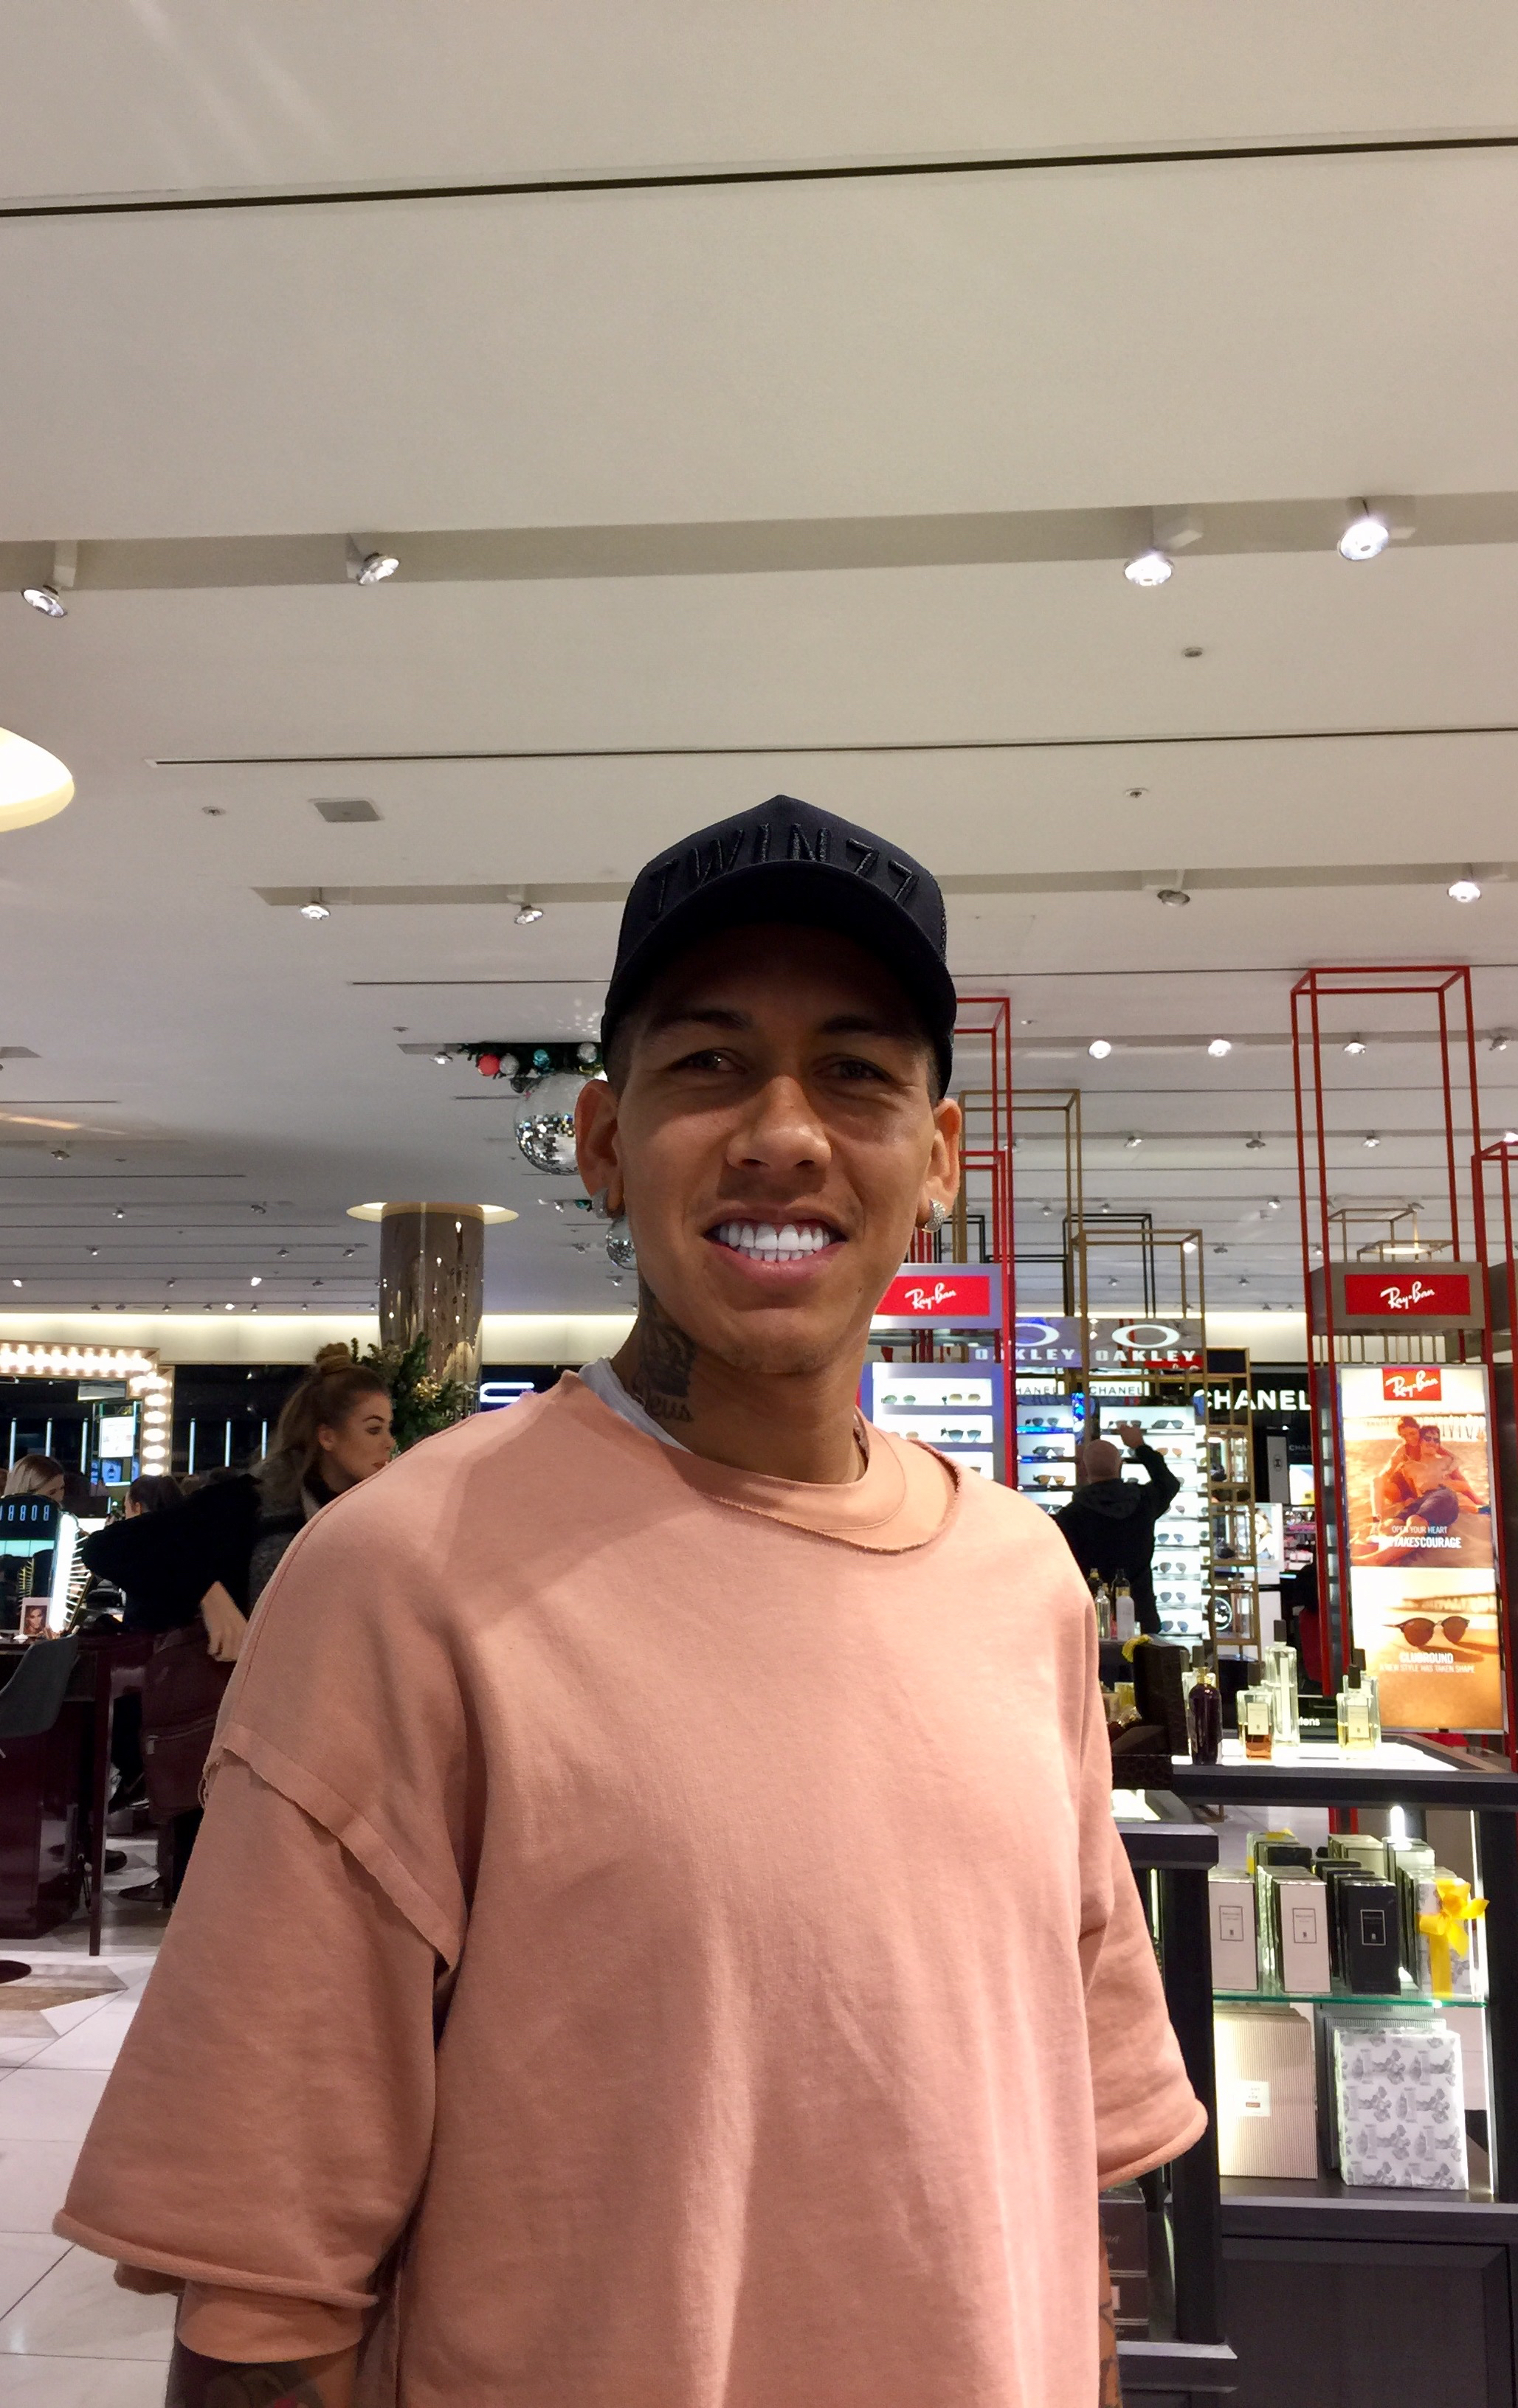 Ran into Firmino in Manchester Selfridges on Saturday morning,  thanked him for lopping off the topknot and begged him to score against the Blues on Monday, he said he would. We have his word!